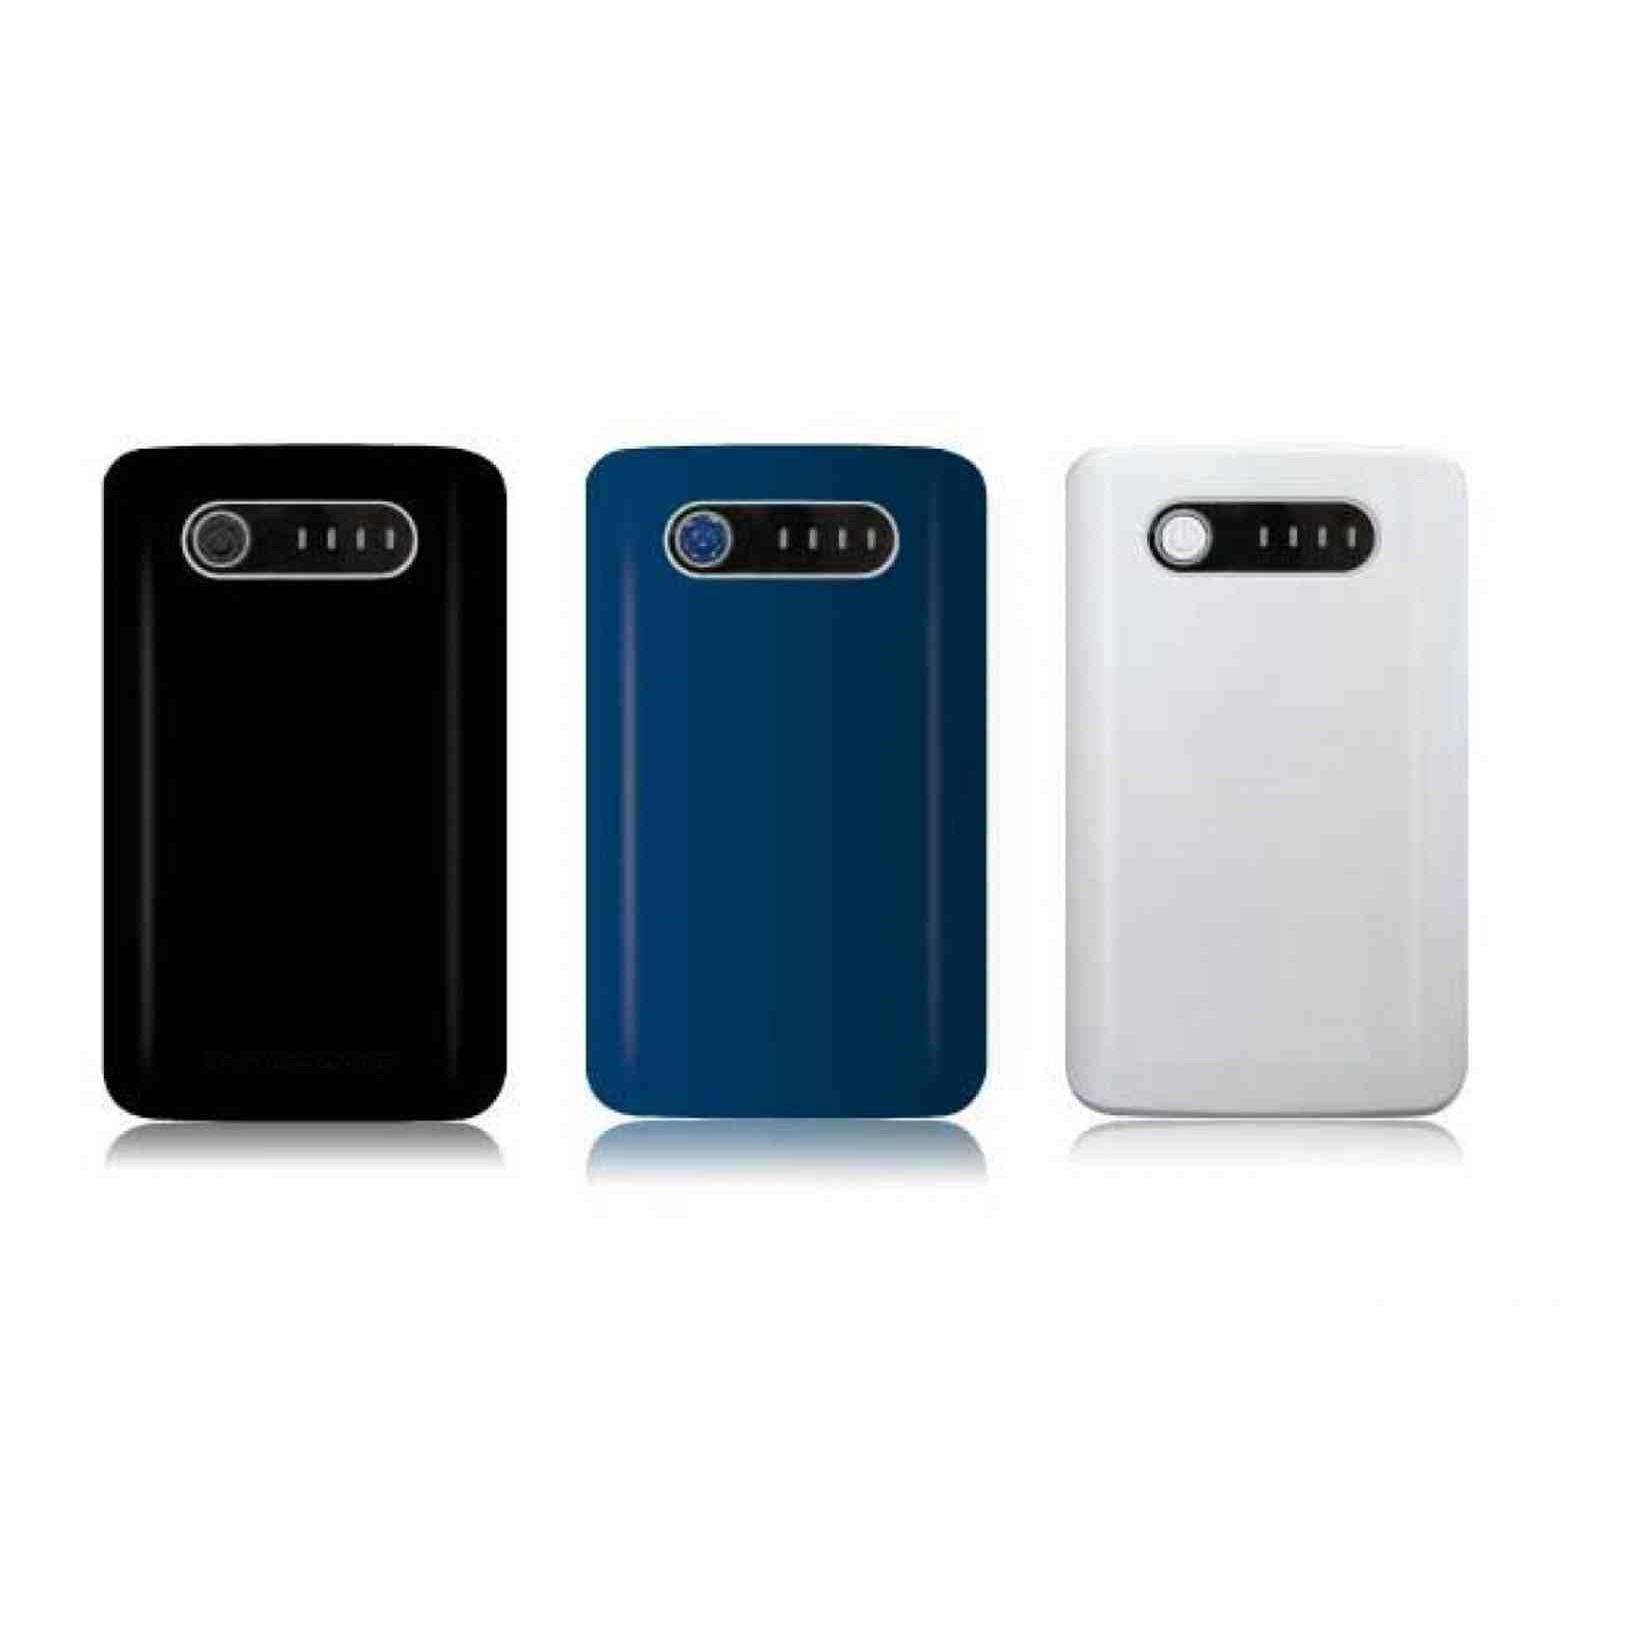 15000mAh Power Bank Portable Charger for Nokia X2-00 ...